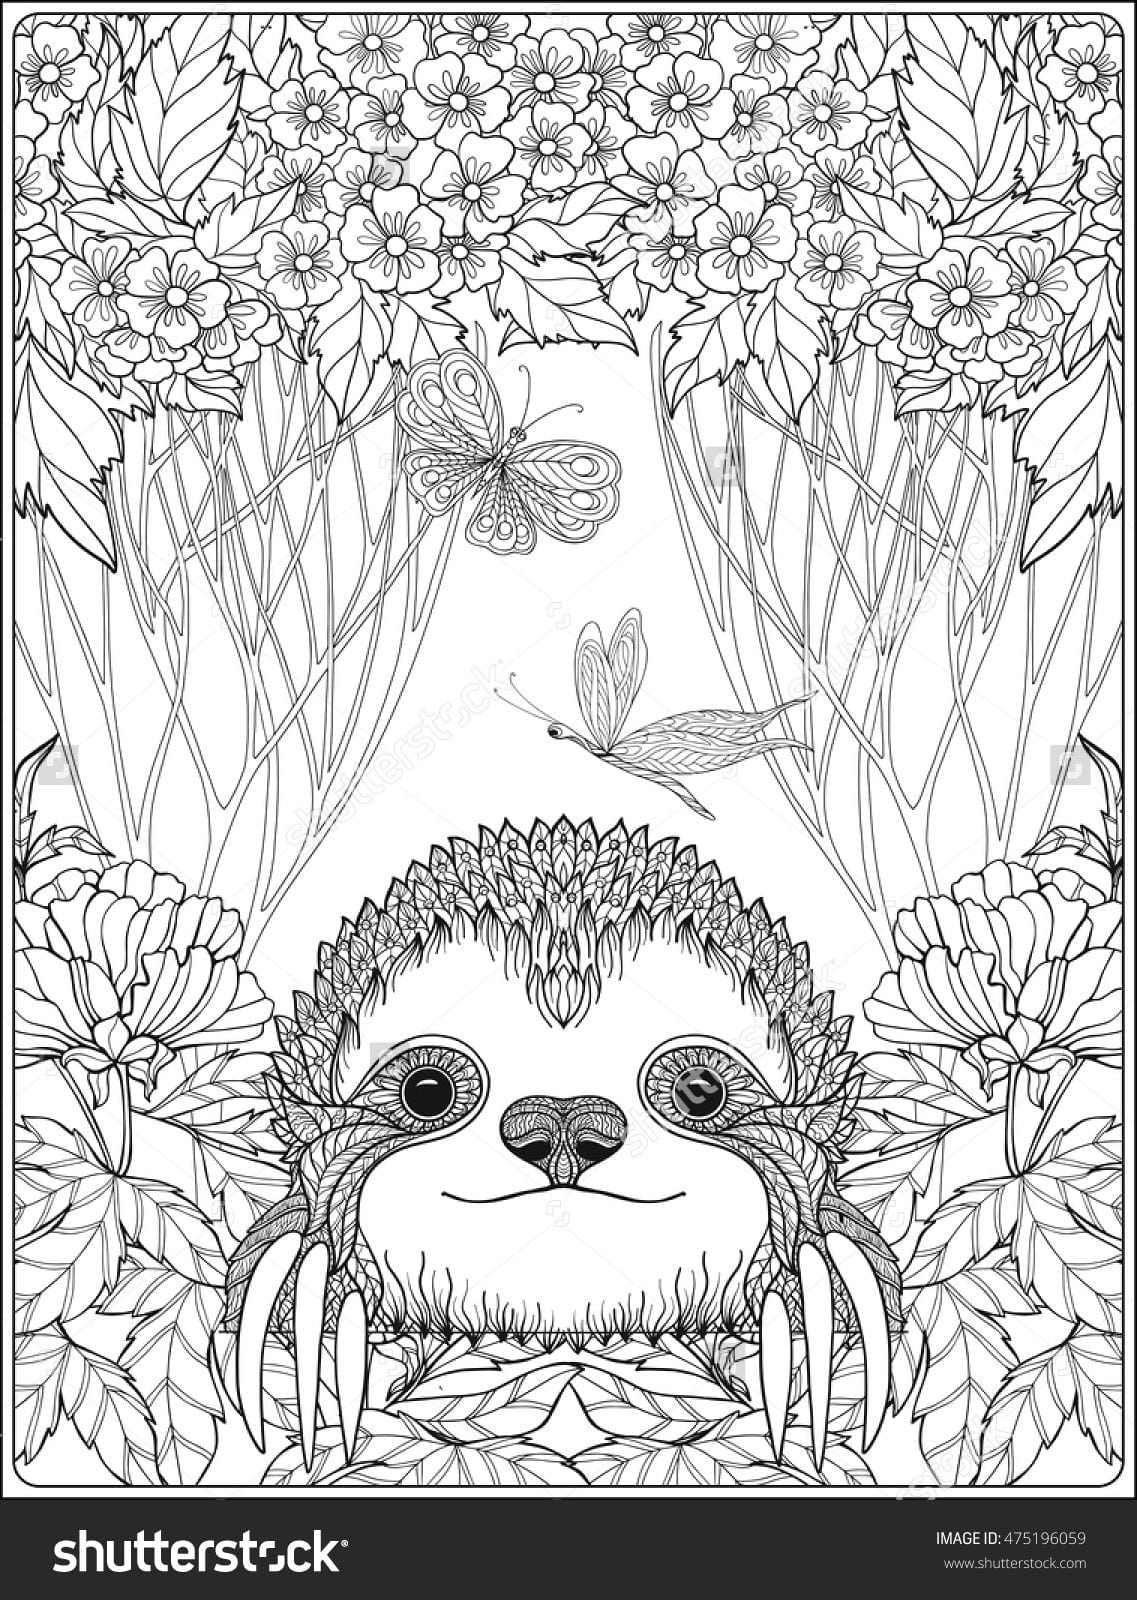 Cute Sloth In Forest Coloring Page For Adults Shutterstock Sloth